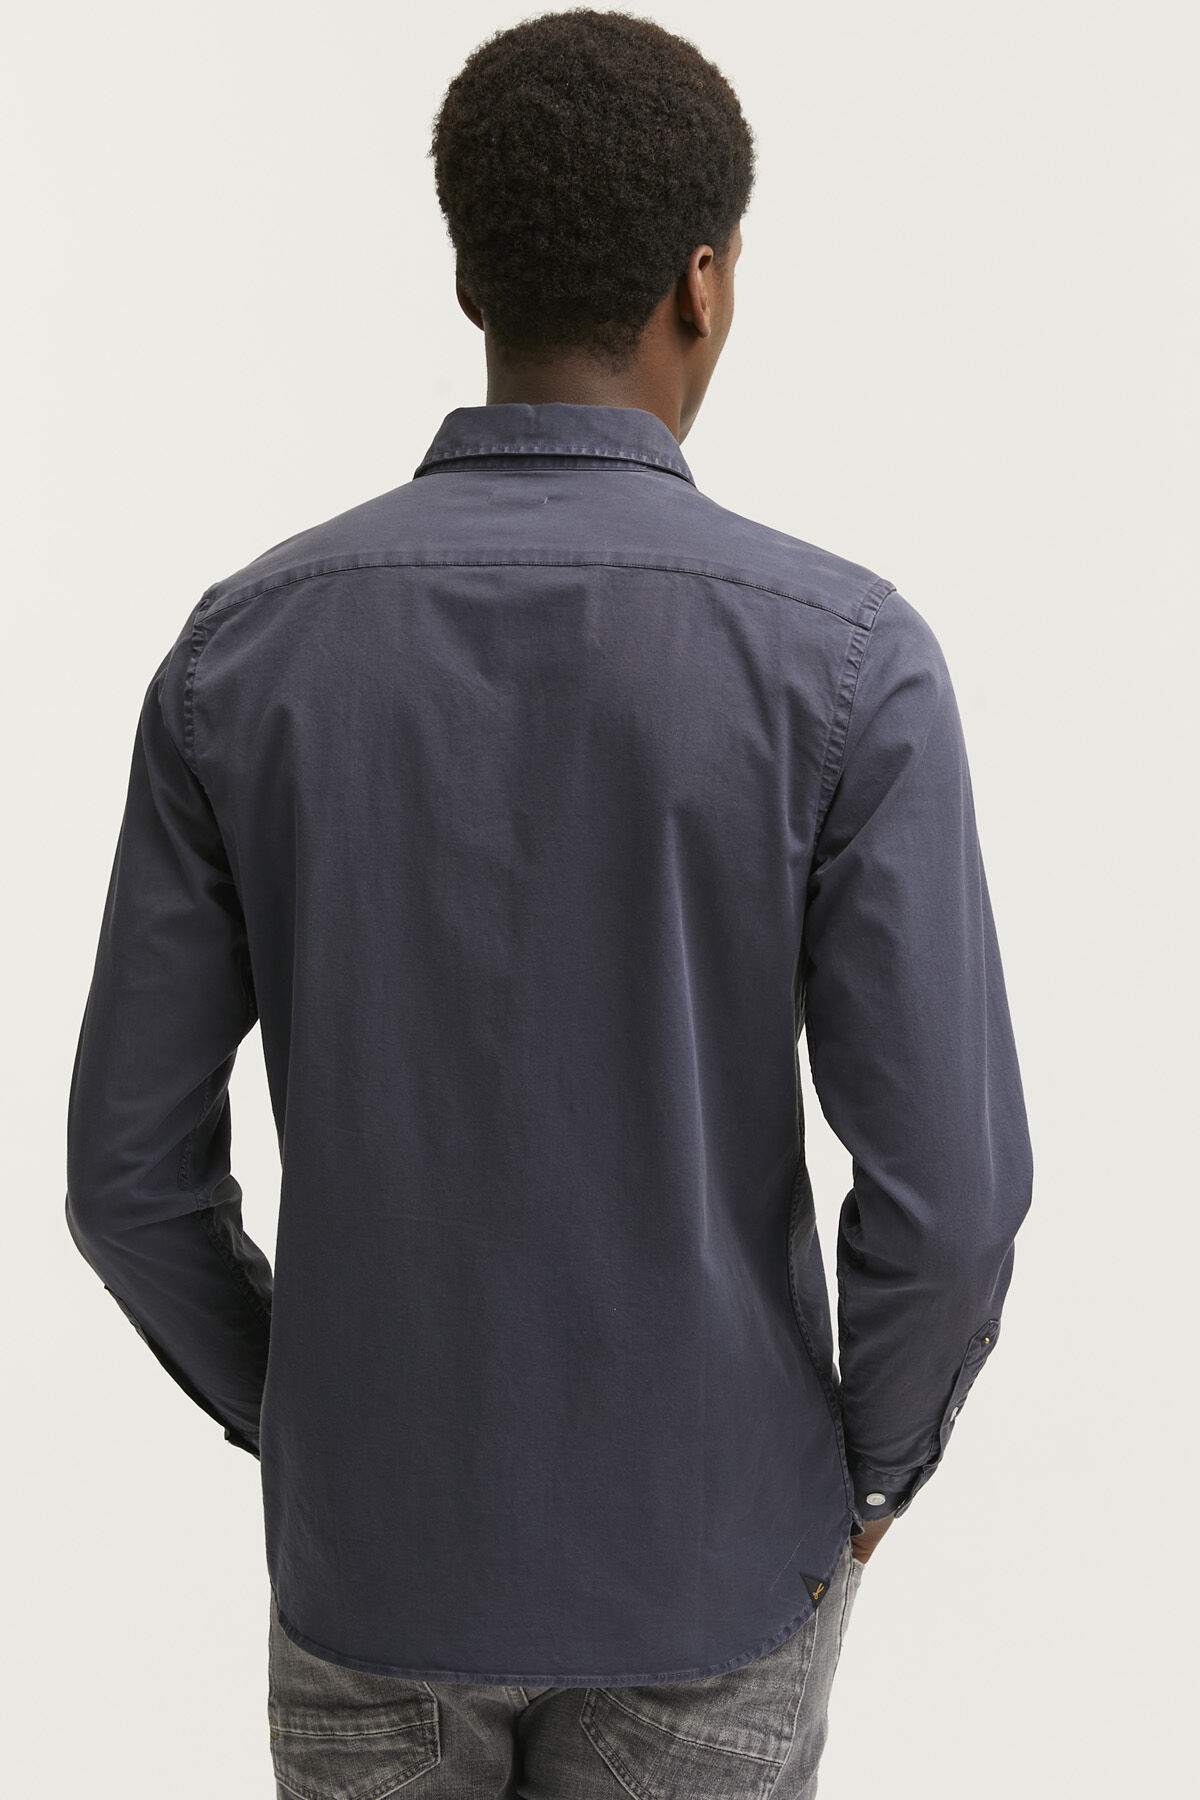 HARRISON SHIRT Lightweight Cotton Twill - Slim Fit